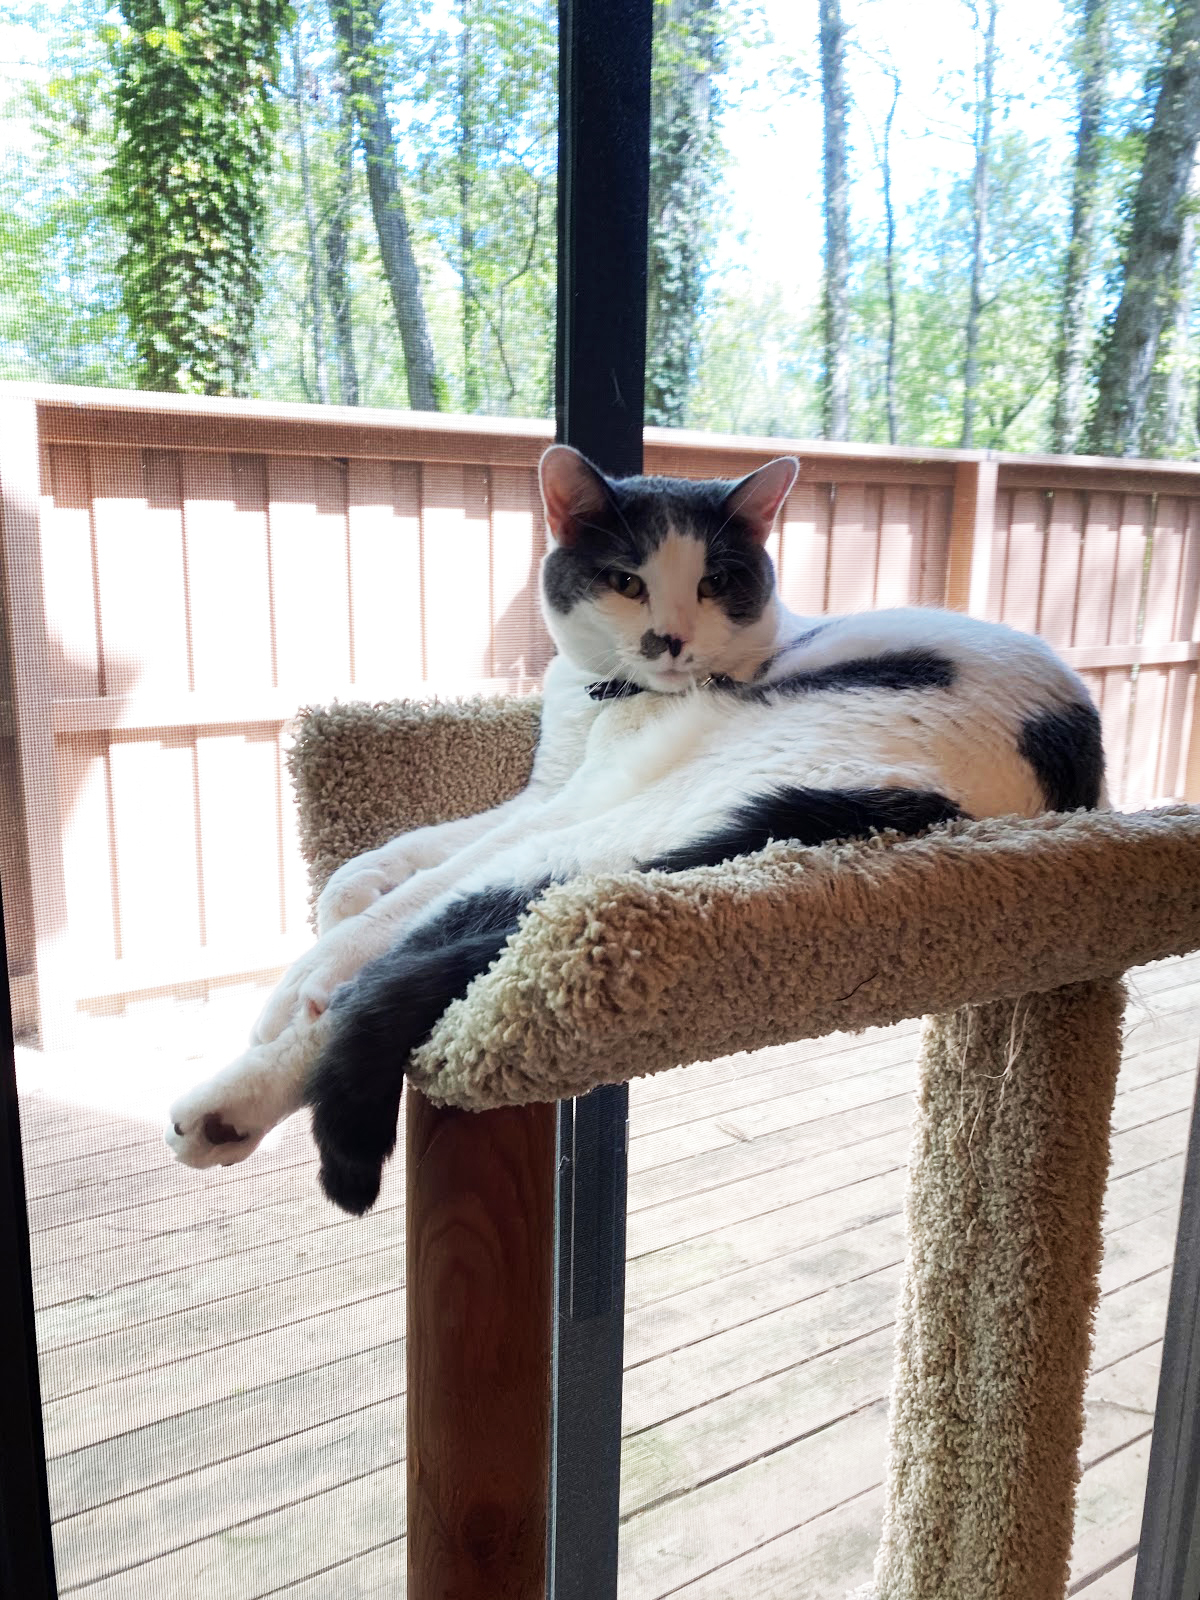 A closeup photo of a black and white cat lying down in a cat tower in front of a sliding glass window featuring a deck, porch, and greenery.